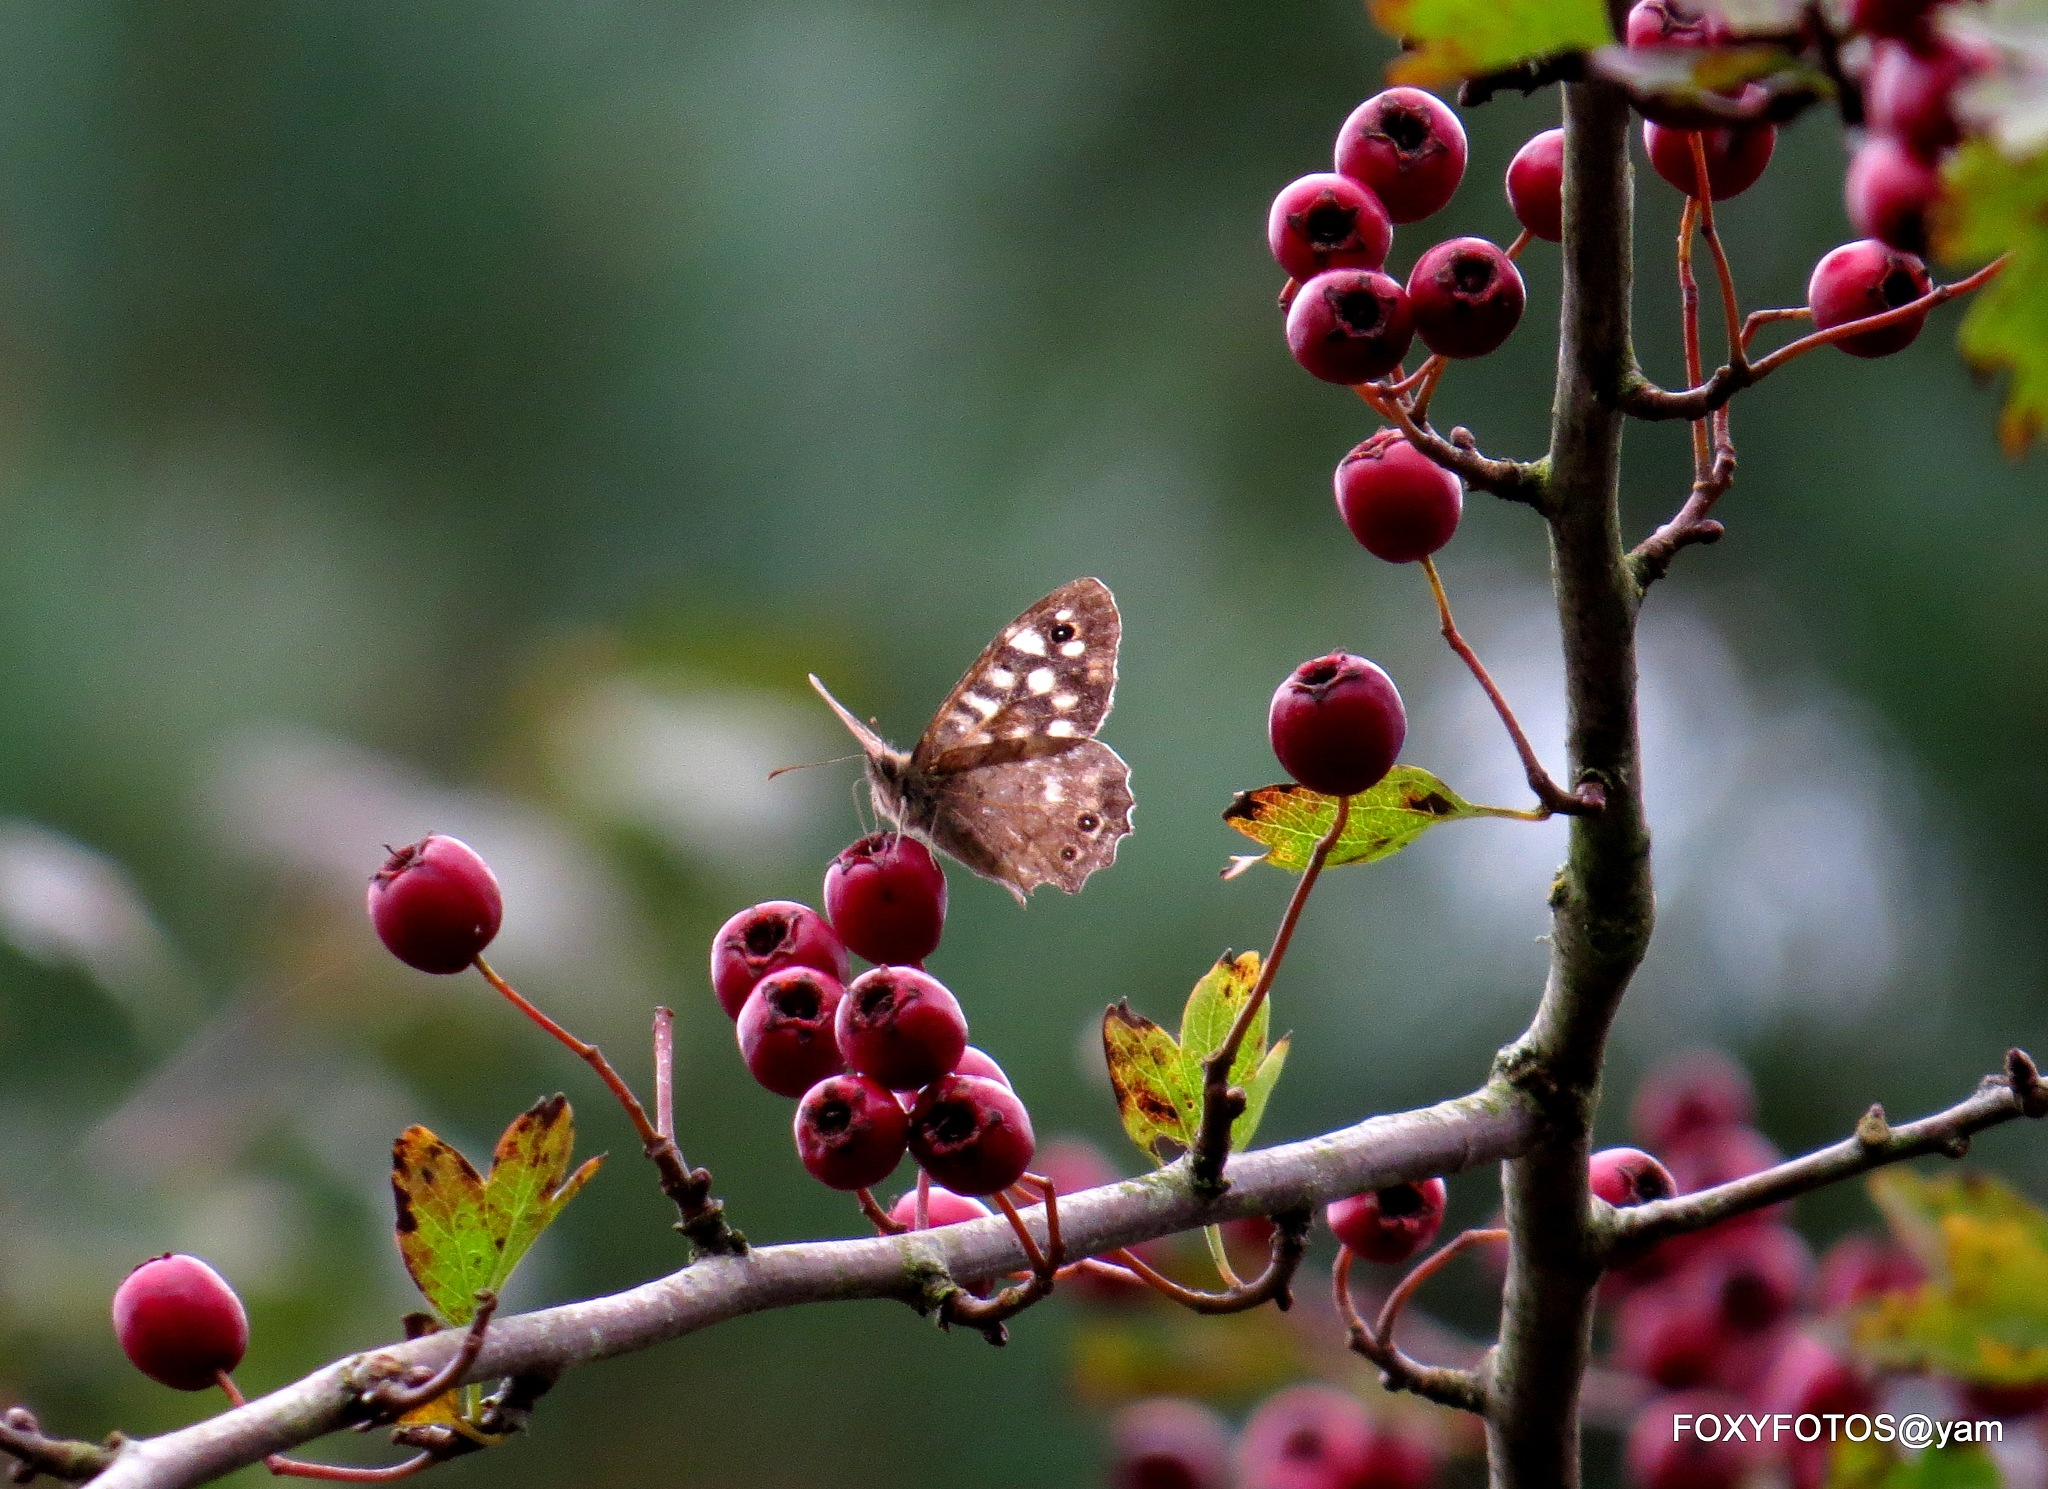 Butterfly autumn  by David.s.fox.9